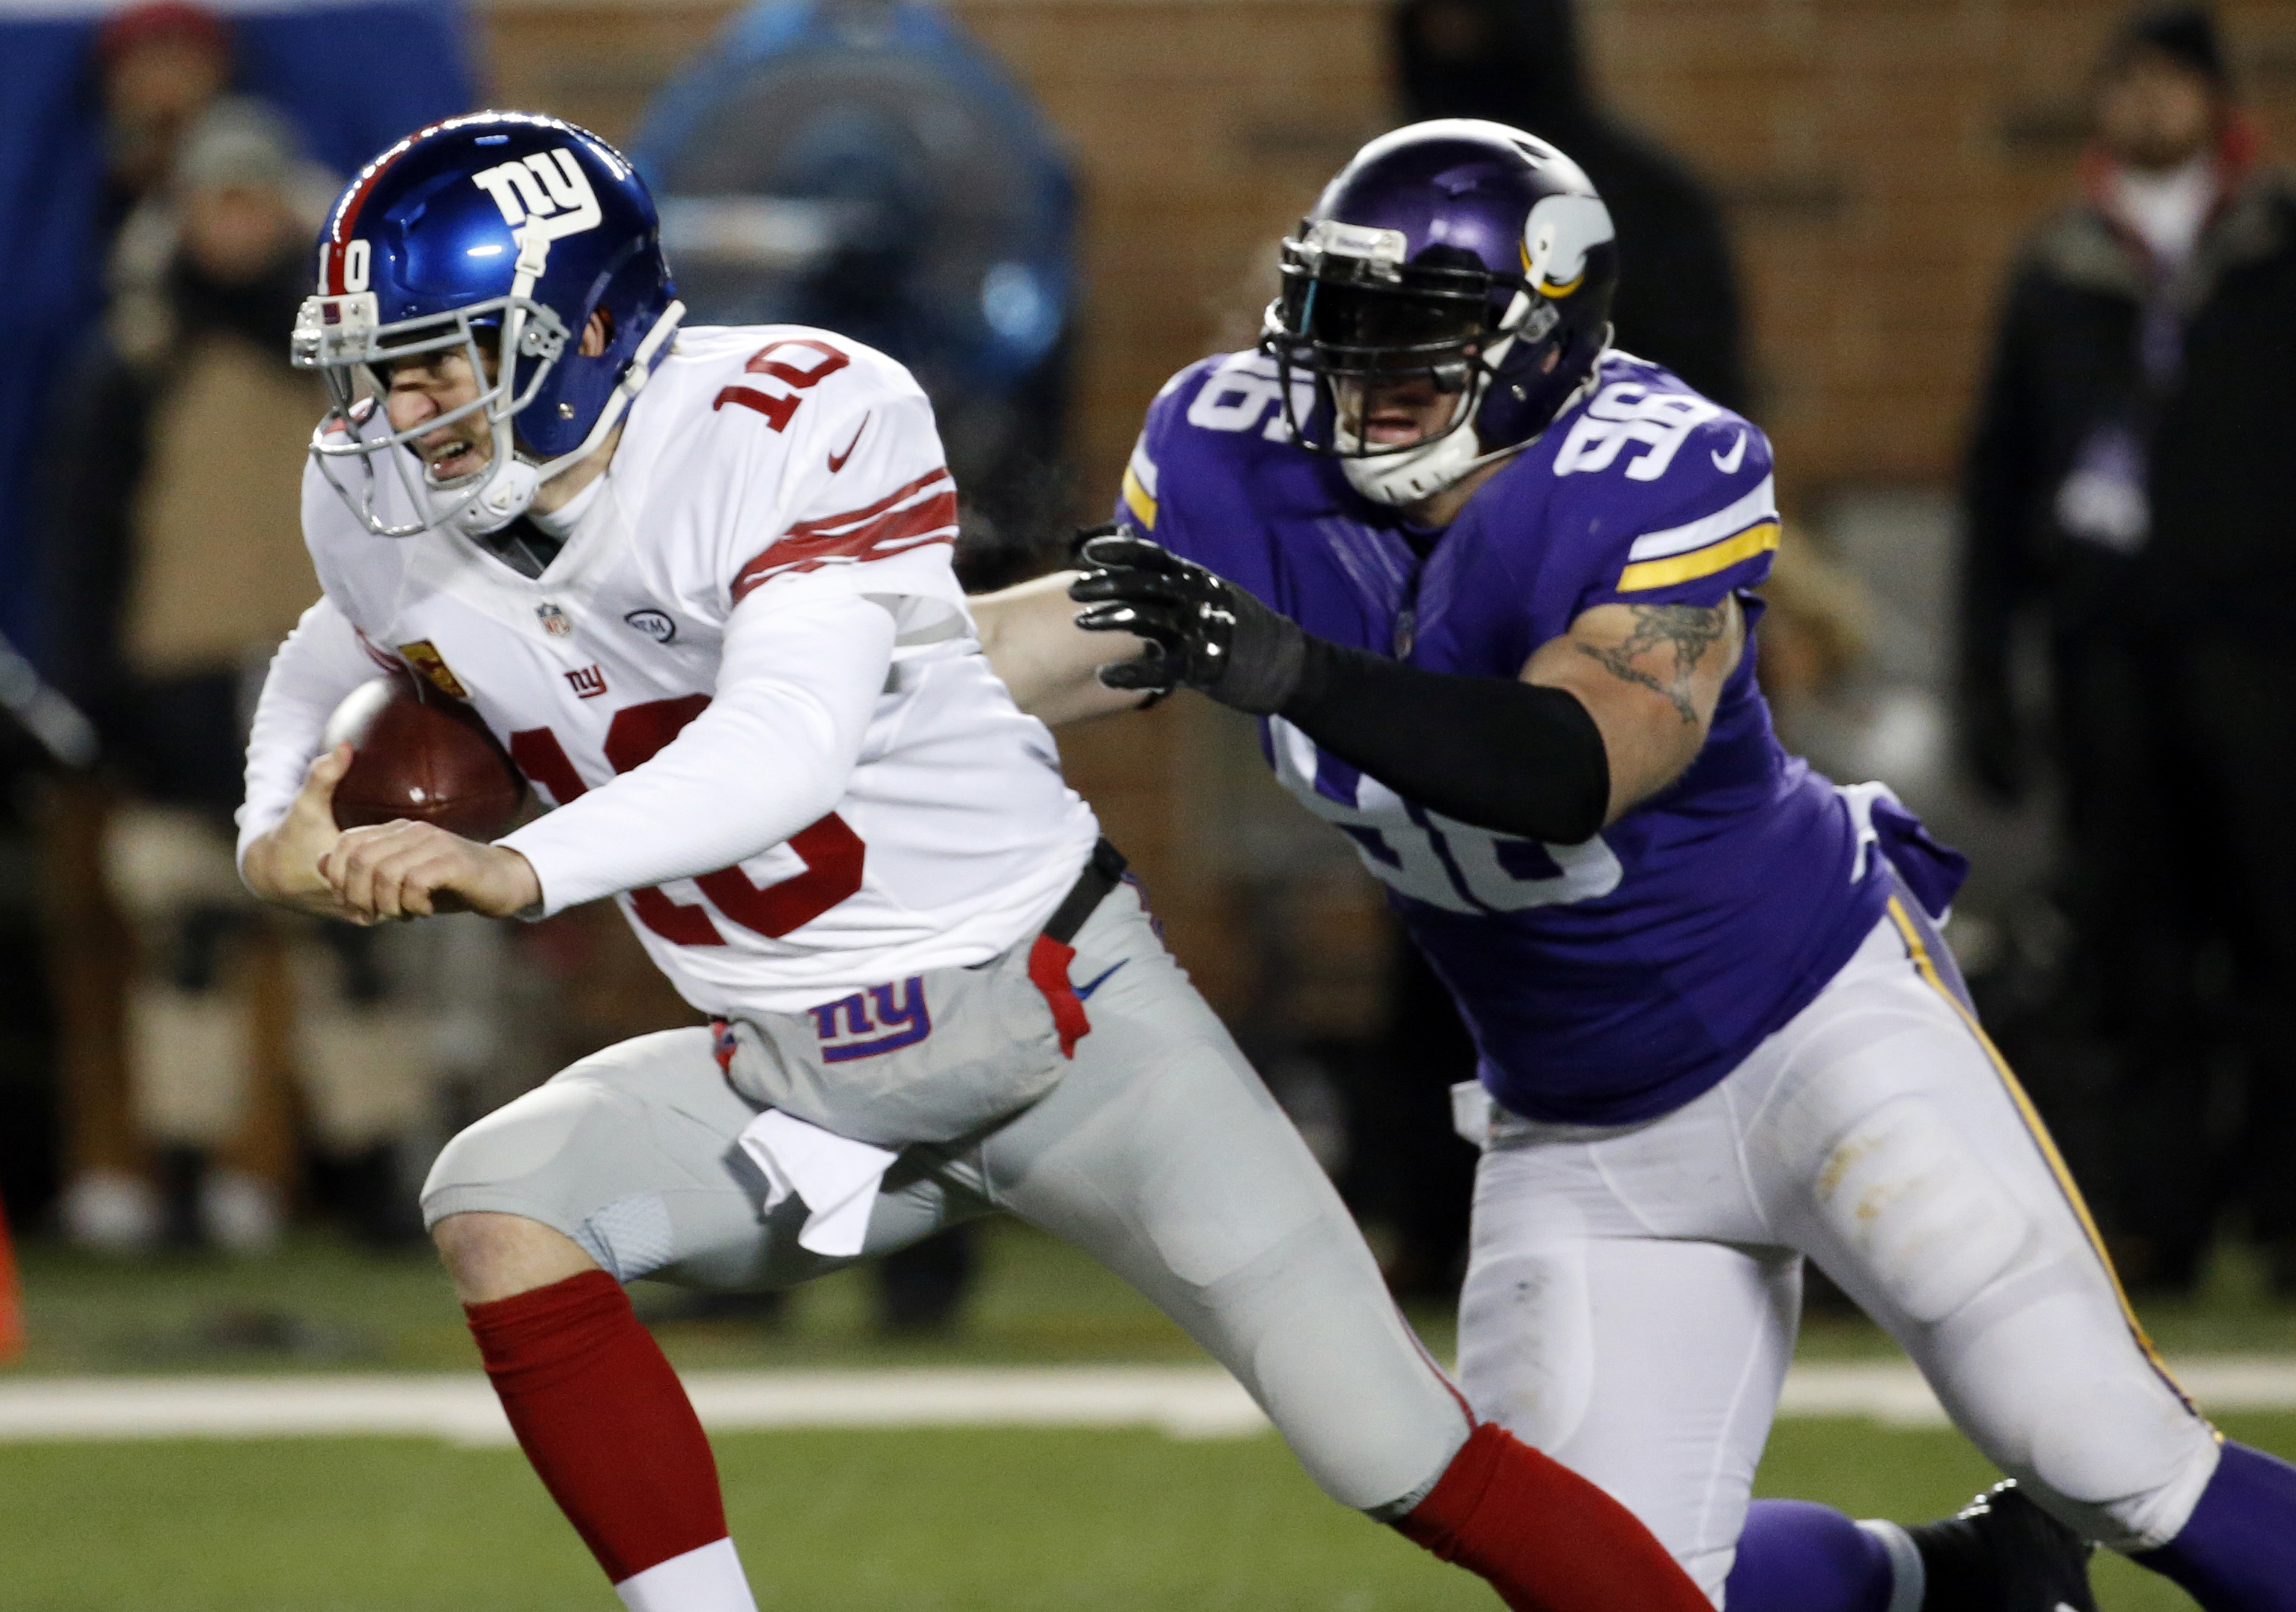 FILE - In this Dec. 22, 2015, file photo, New York Giants quarterback Eli Manning (10) tries to get away from Minnesota Vikings defensive end Brian Robison during the first half of an NFL football game in Minneapolis. In seven career starts against the Vi